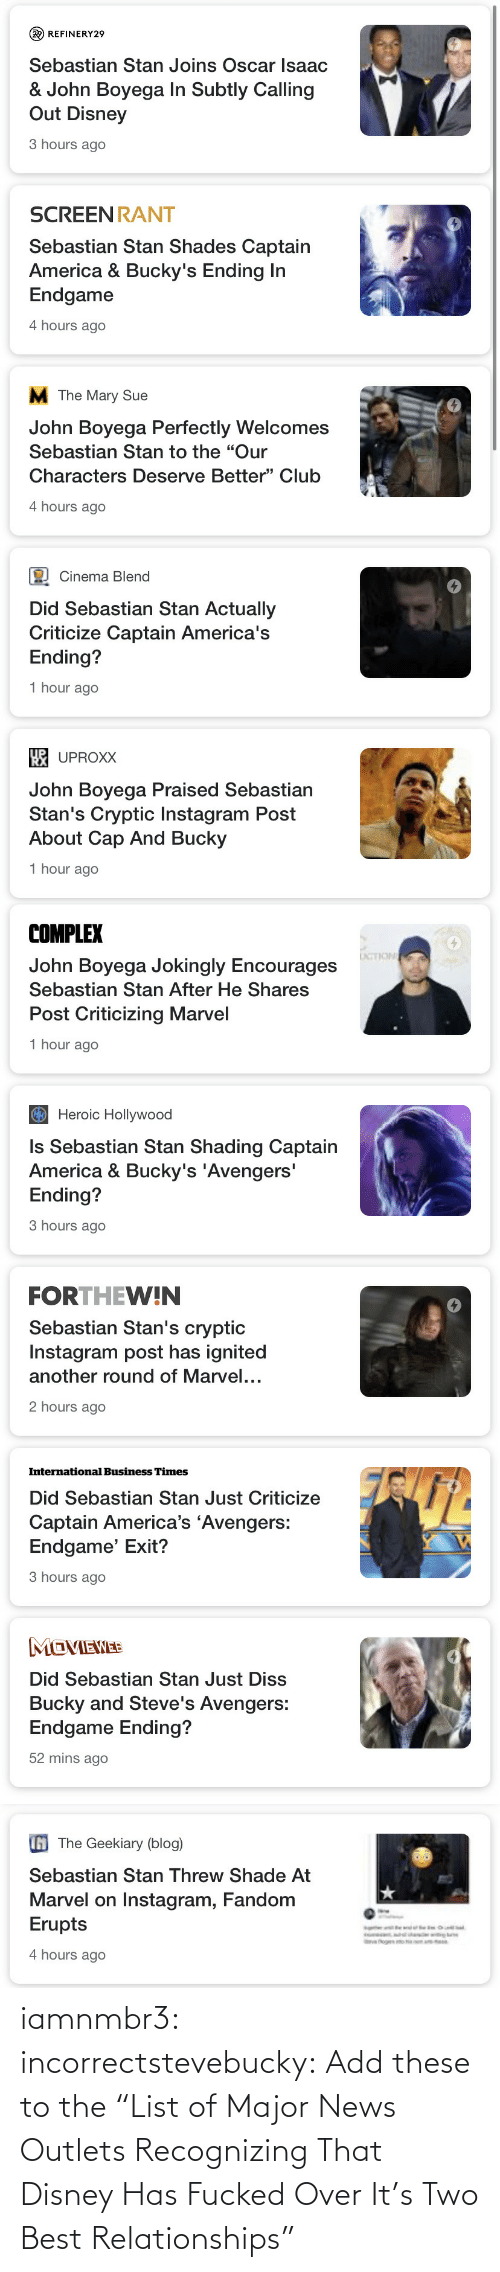 "Relationships: iamnmbr3:  incorrectstevebucky: Add these to the ""List of Major News Outlets Recognizing That Disney Has Fucked Over It's Two Best Relationships"""